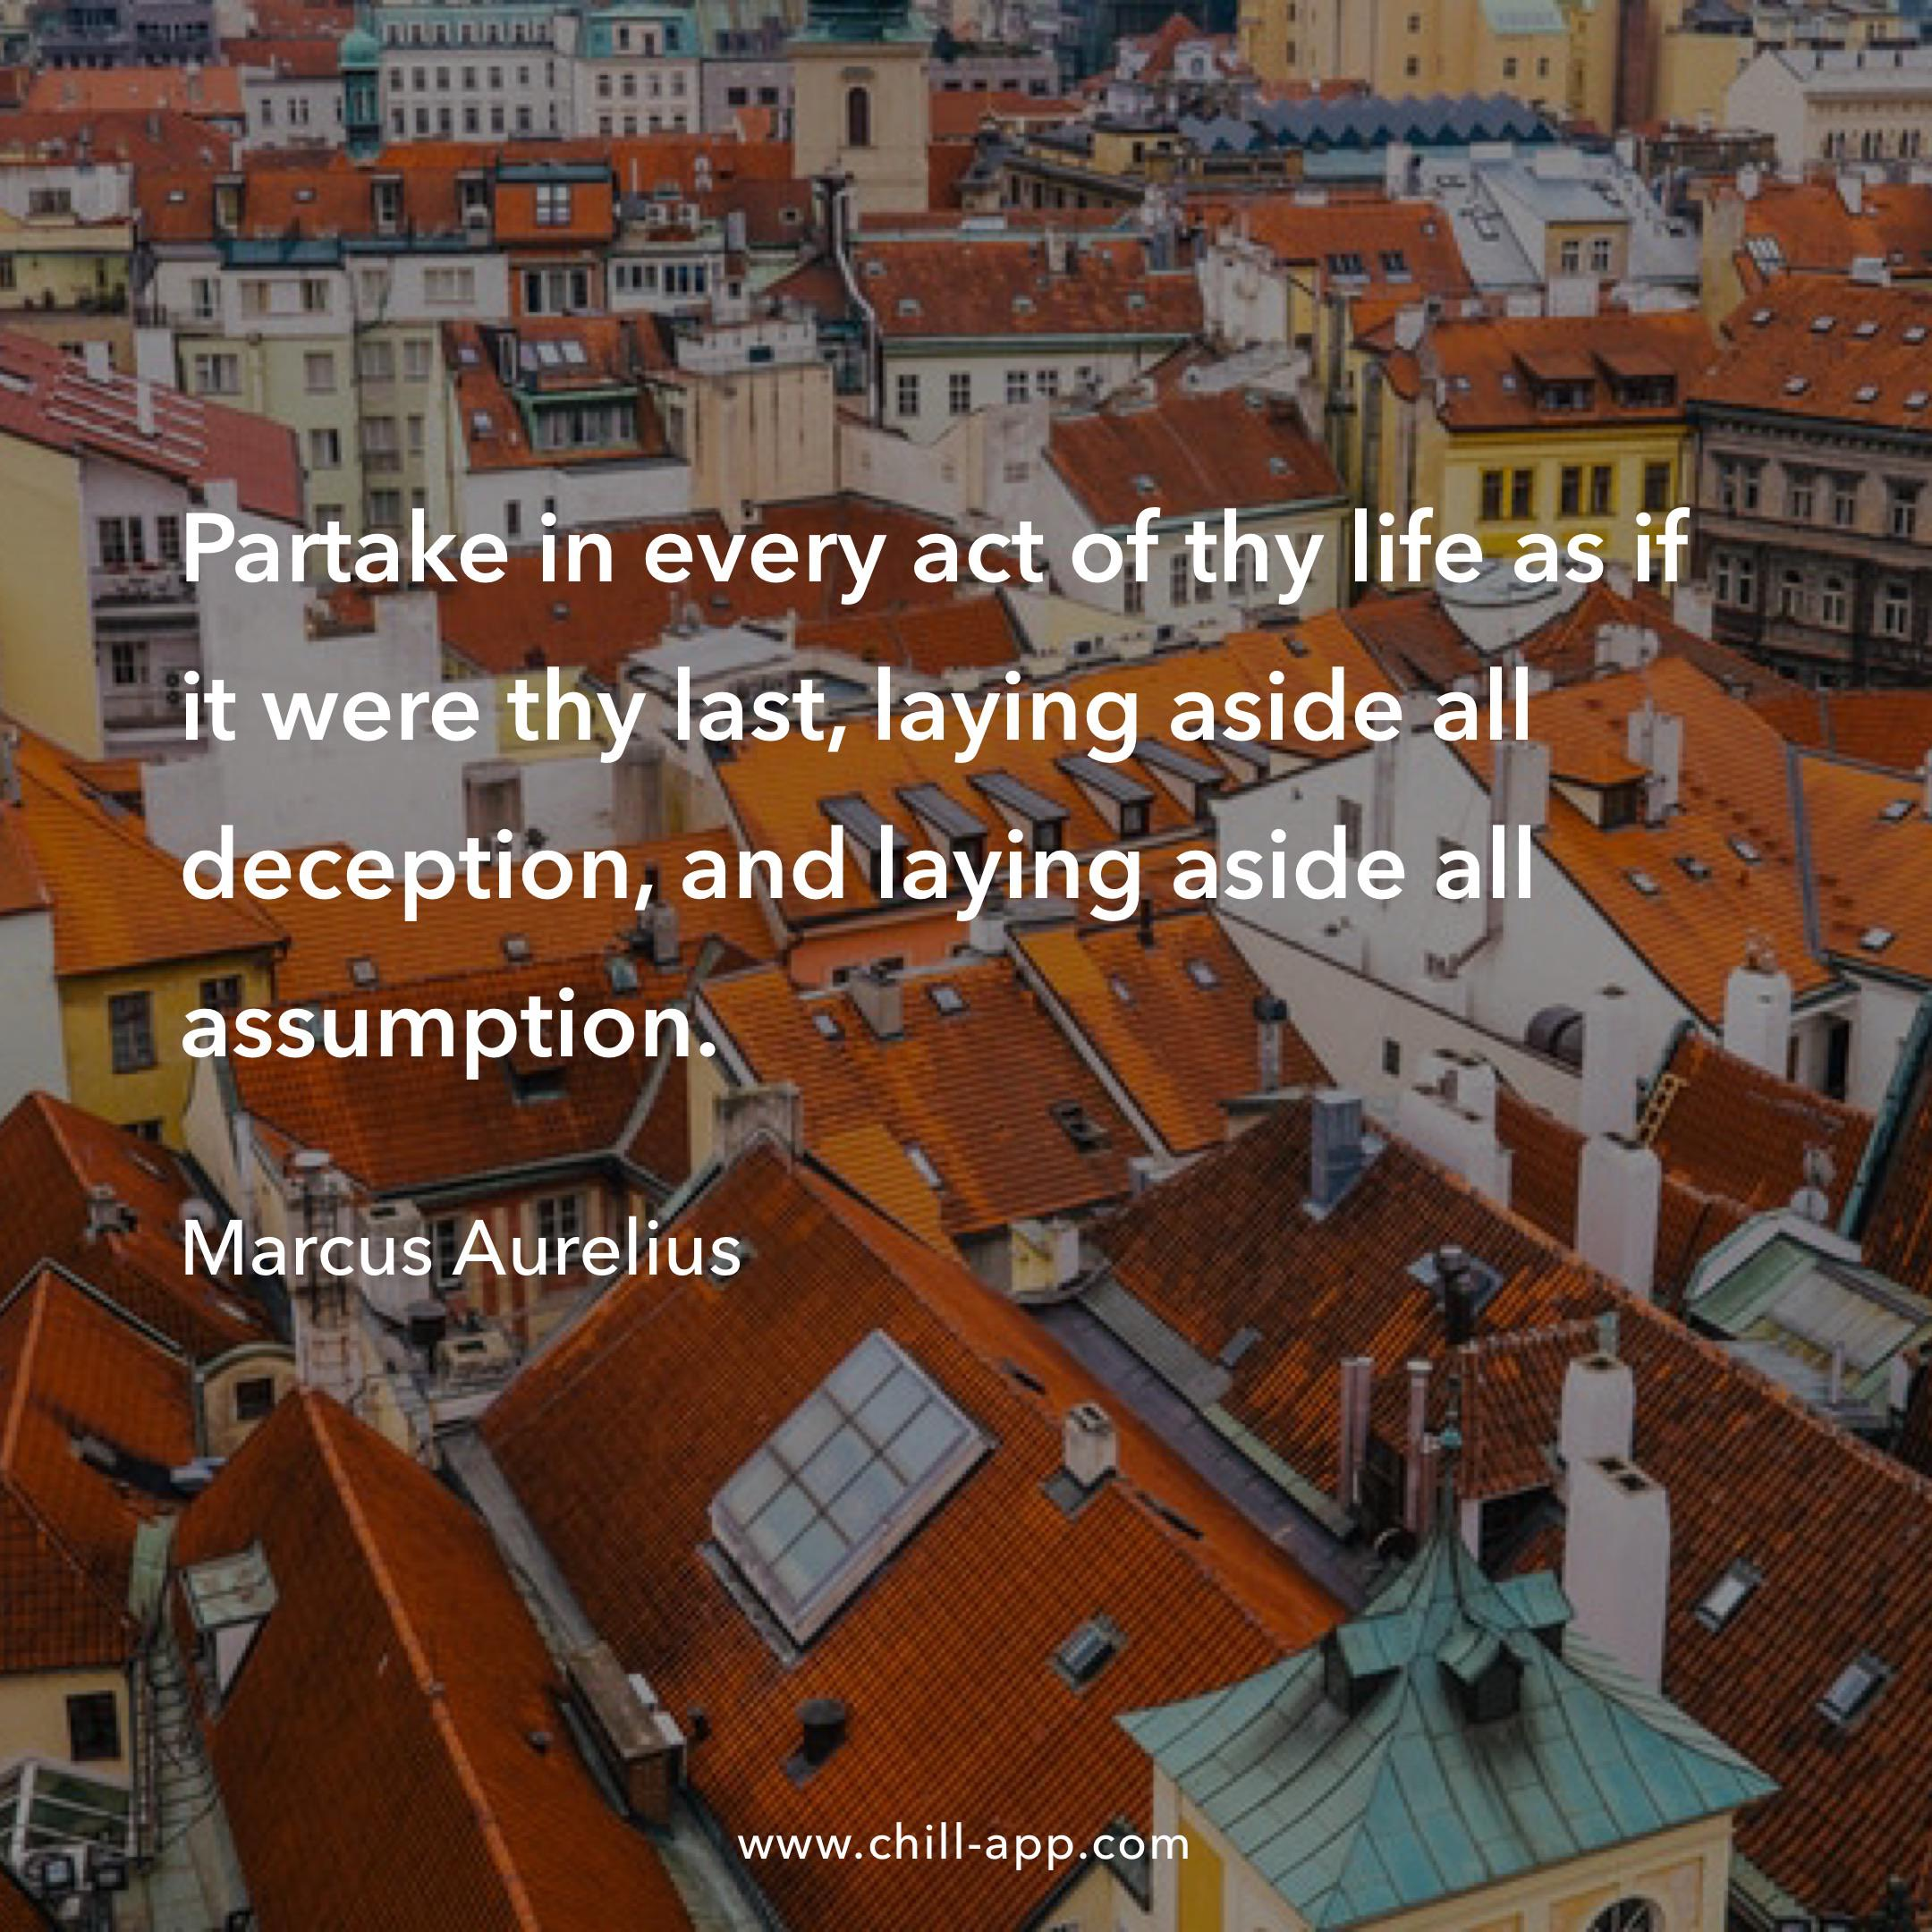 [Image] Partake in every act of thy life as if it were thy last, laying aside all deception, and laying aside all assumption. – Macy's Aurelius